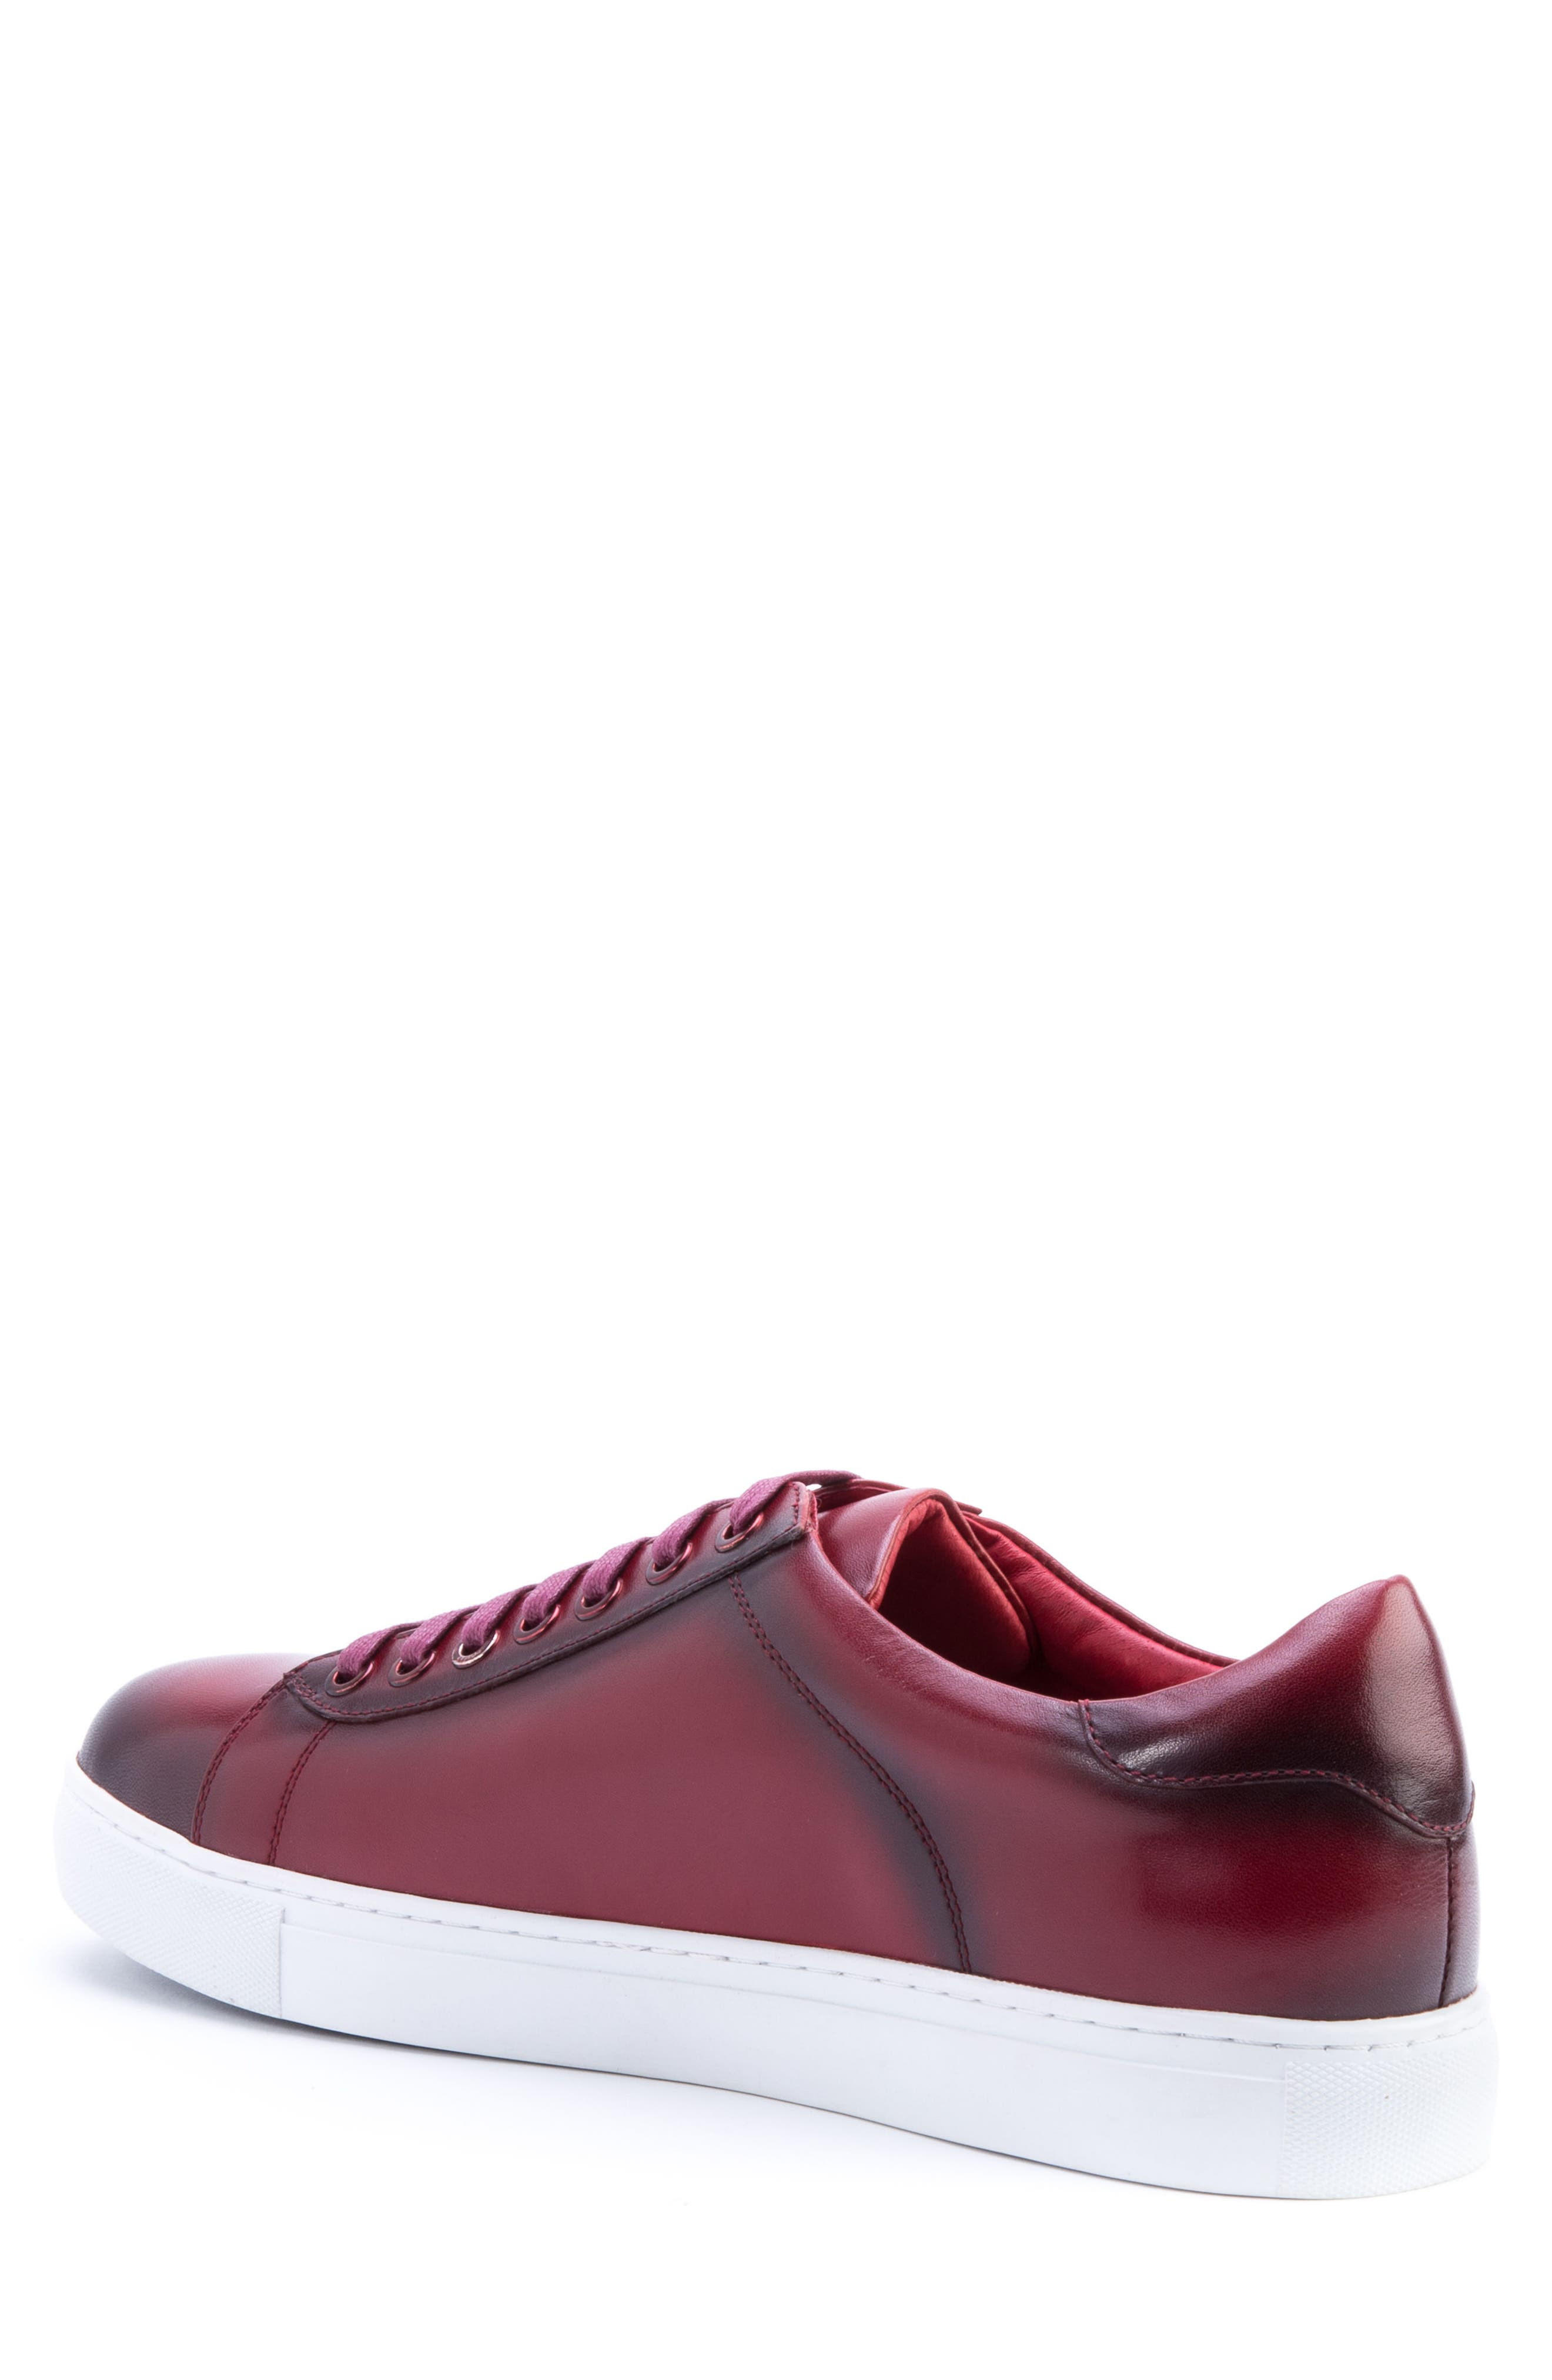 Music Low Top Sneaker,                             Alternate thumbnail 2, color,                             Red Leather